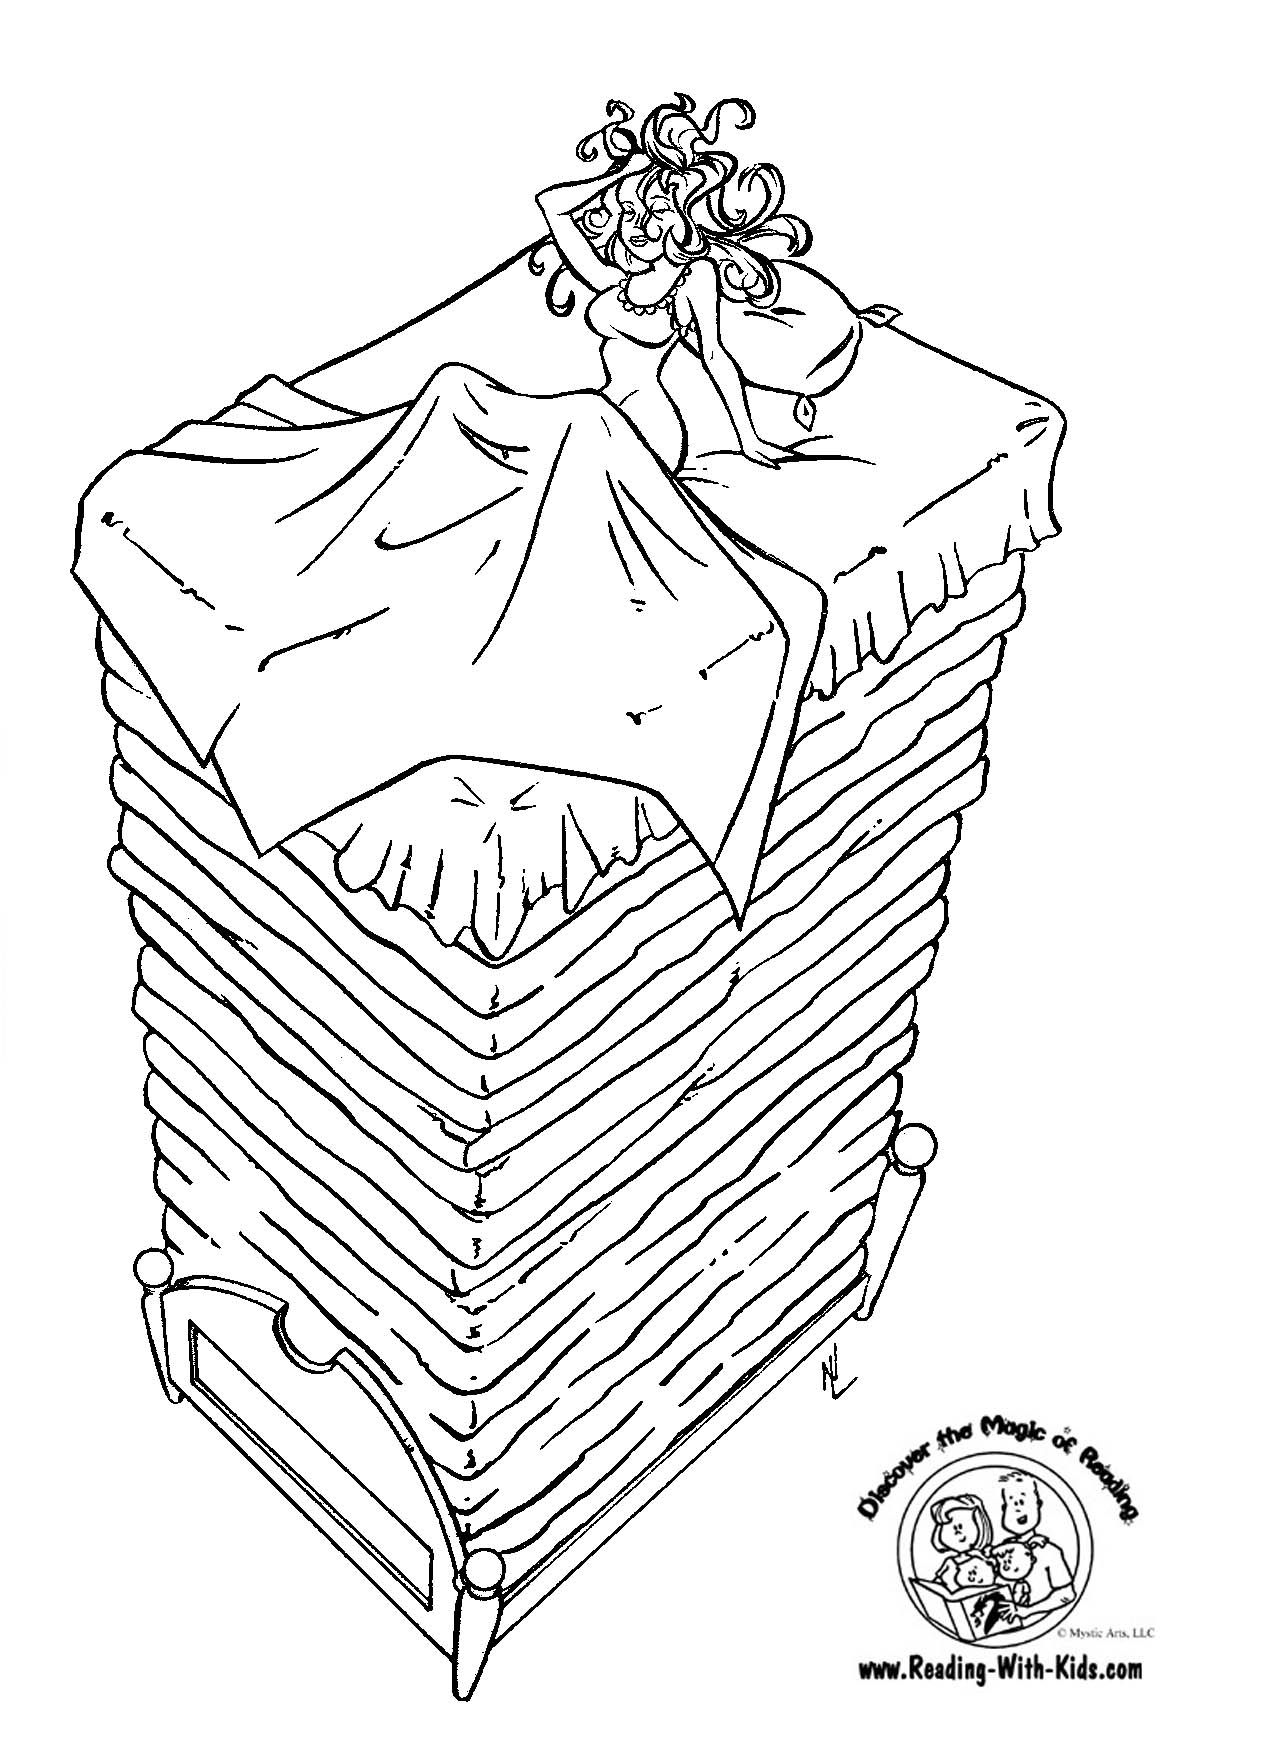 Princess And The Pea Fairy Tale Coloring Page Coloring Books And